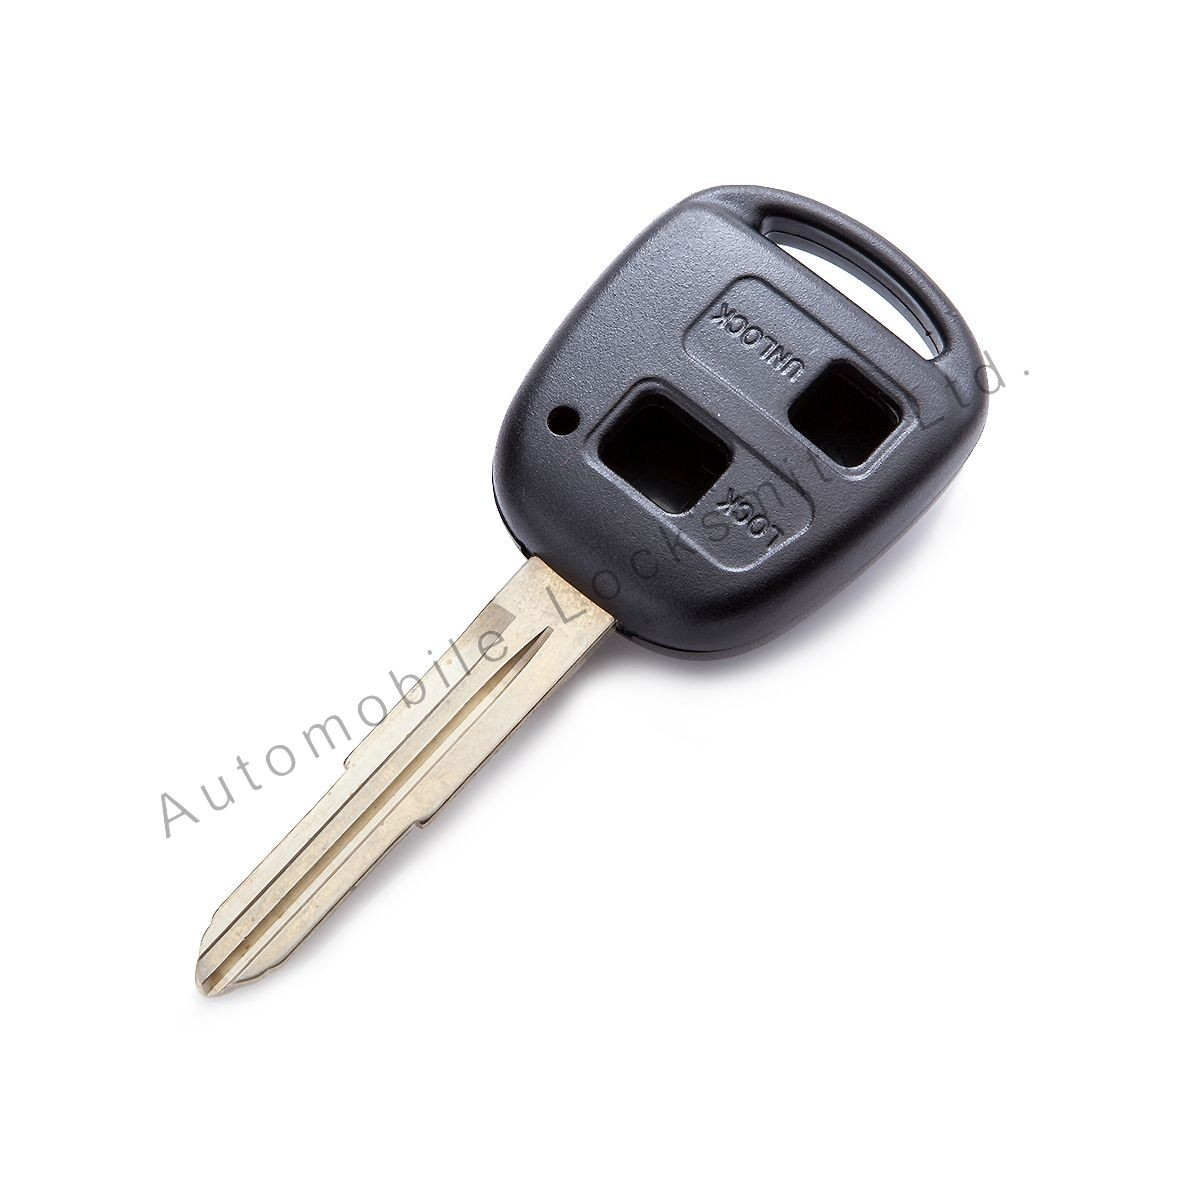 For Toyota Yaris 2 button remote key shell with TOY41 key blade 10-8mm